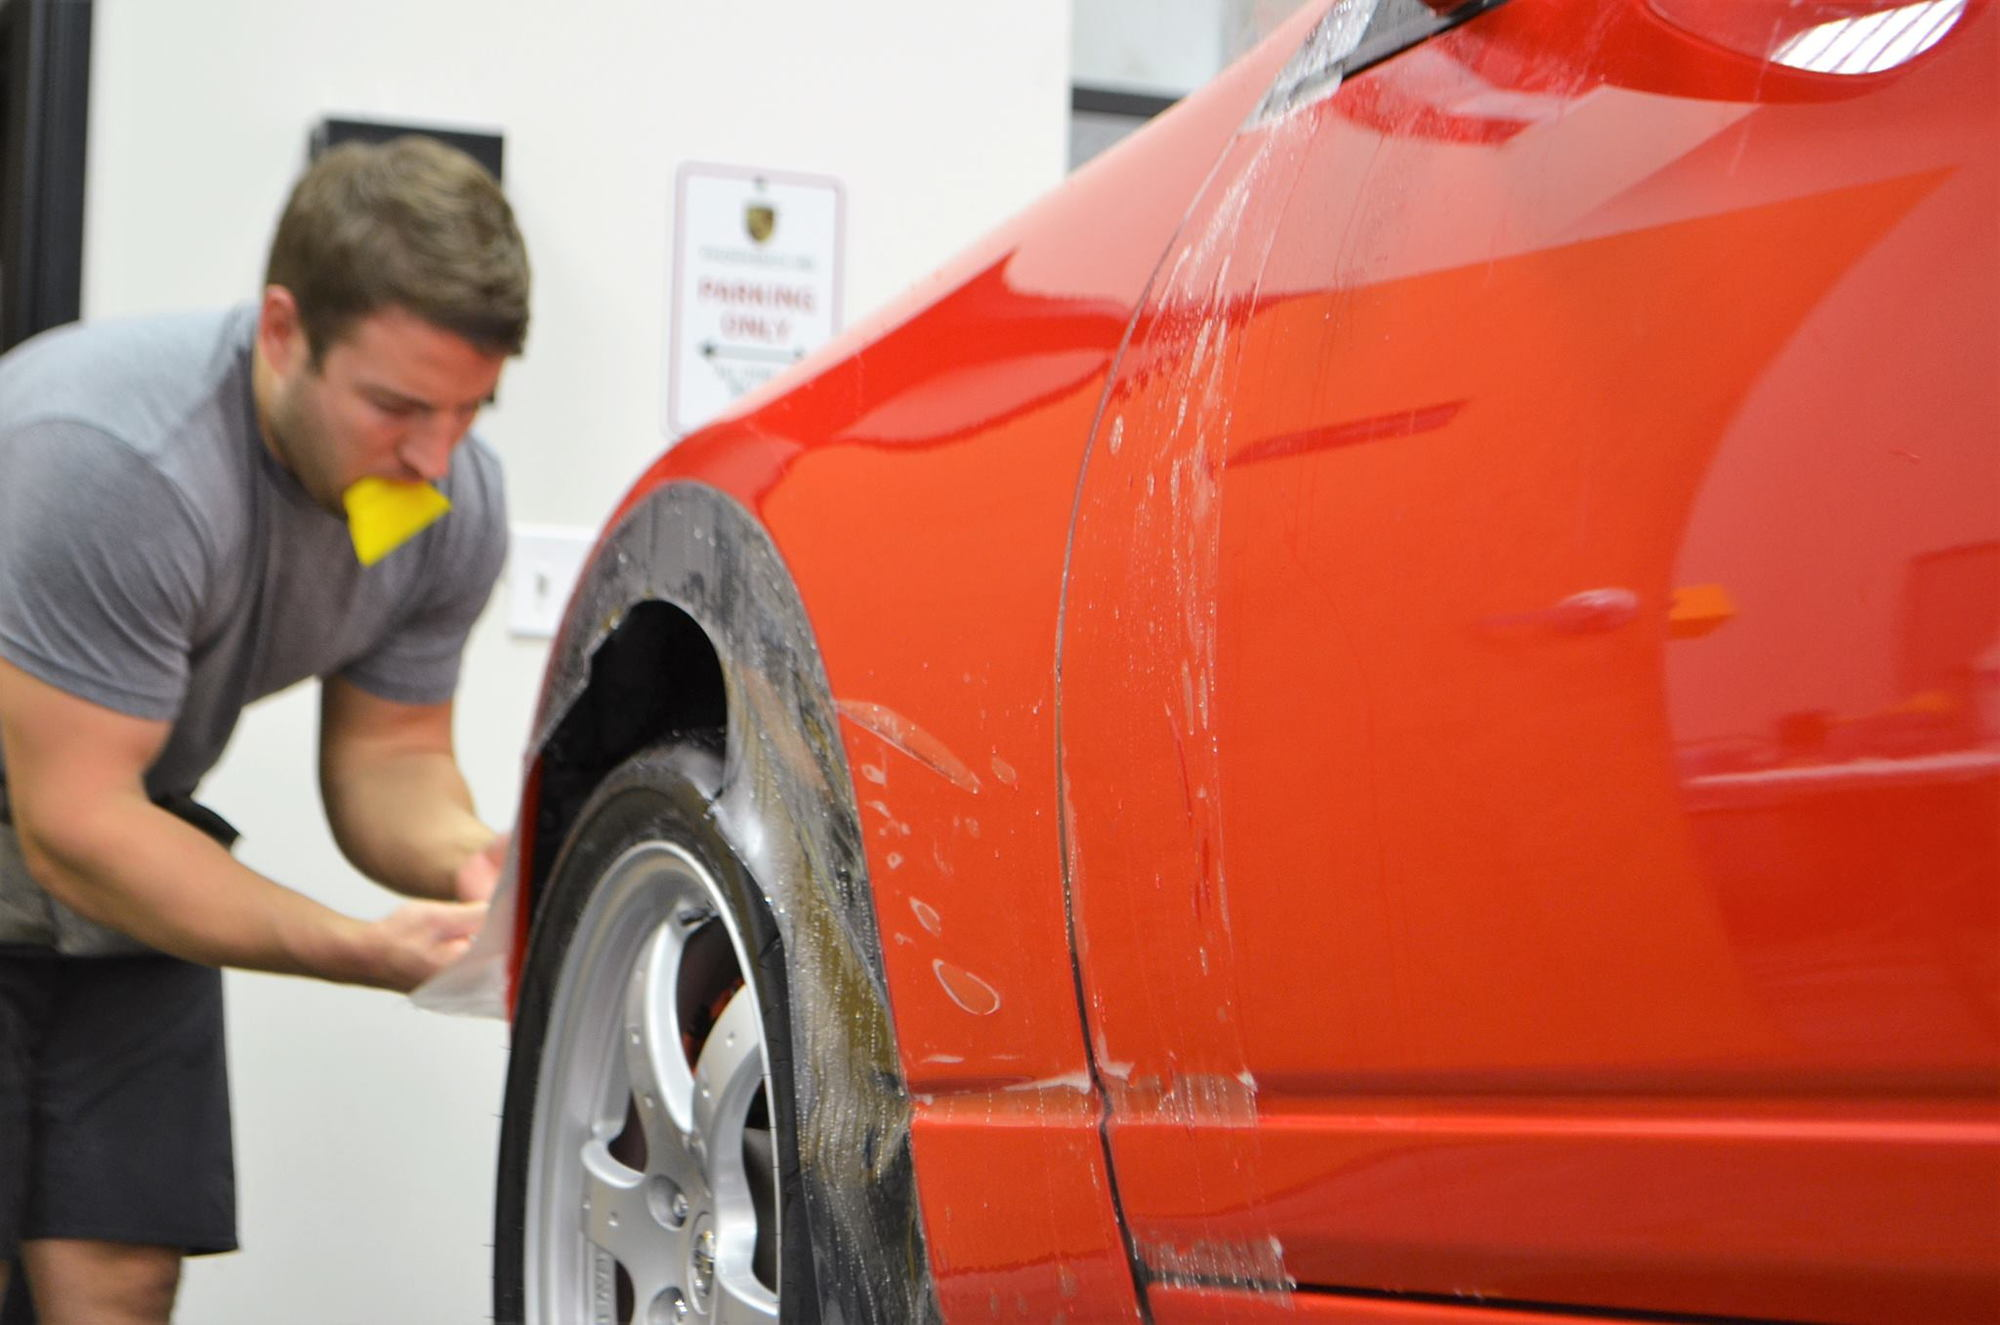 Paint protection film ppf or clear bra is designed to protect automotive finishes from rock chips damage from road debris rubber marks scratches and